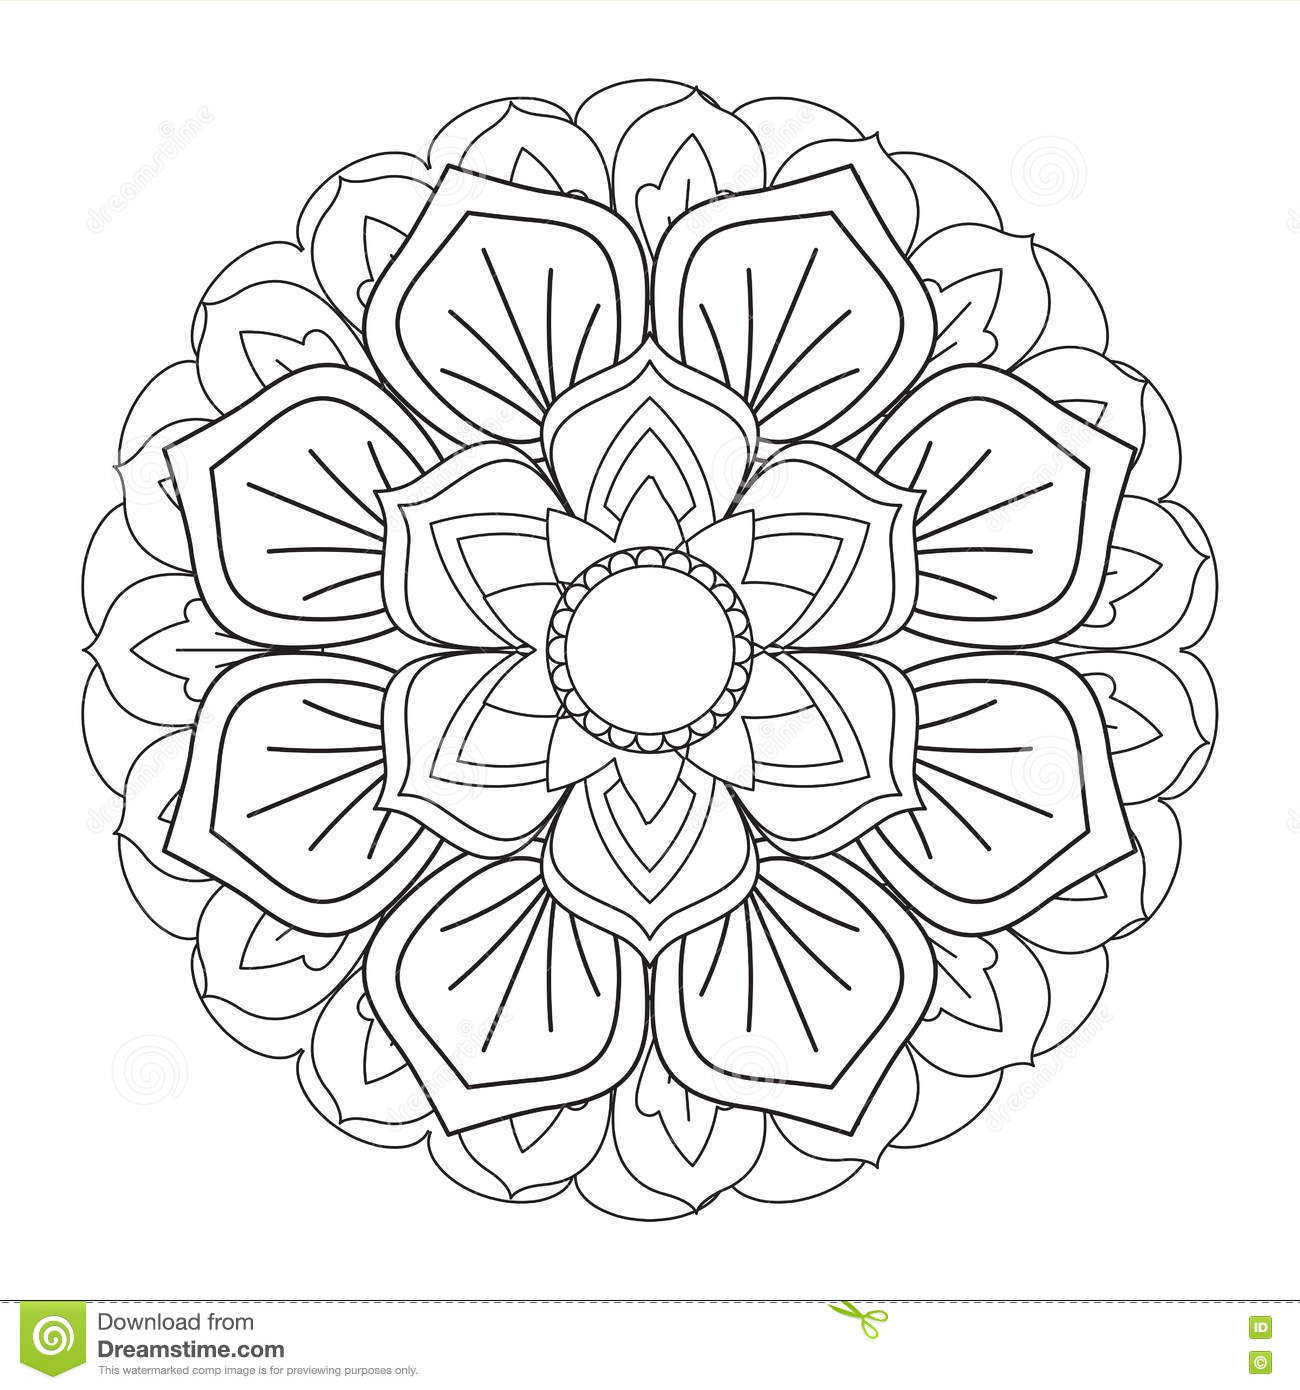 Outline Mandala For Coloring Book Decorative Round Ornament Stock